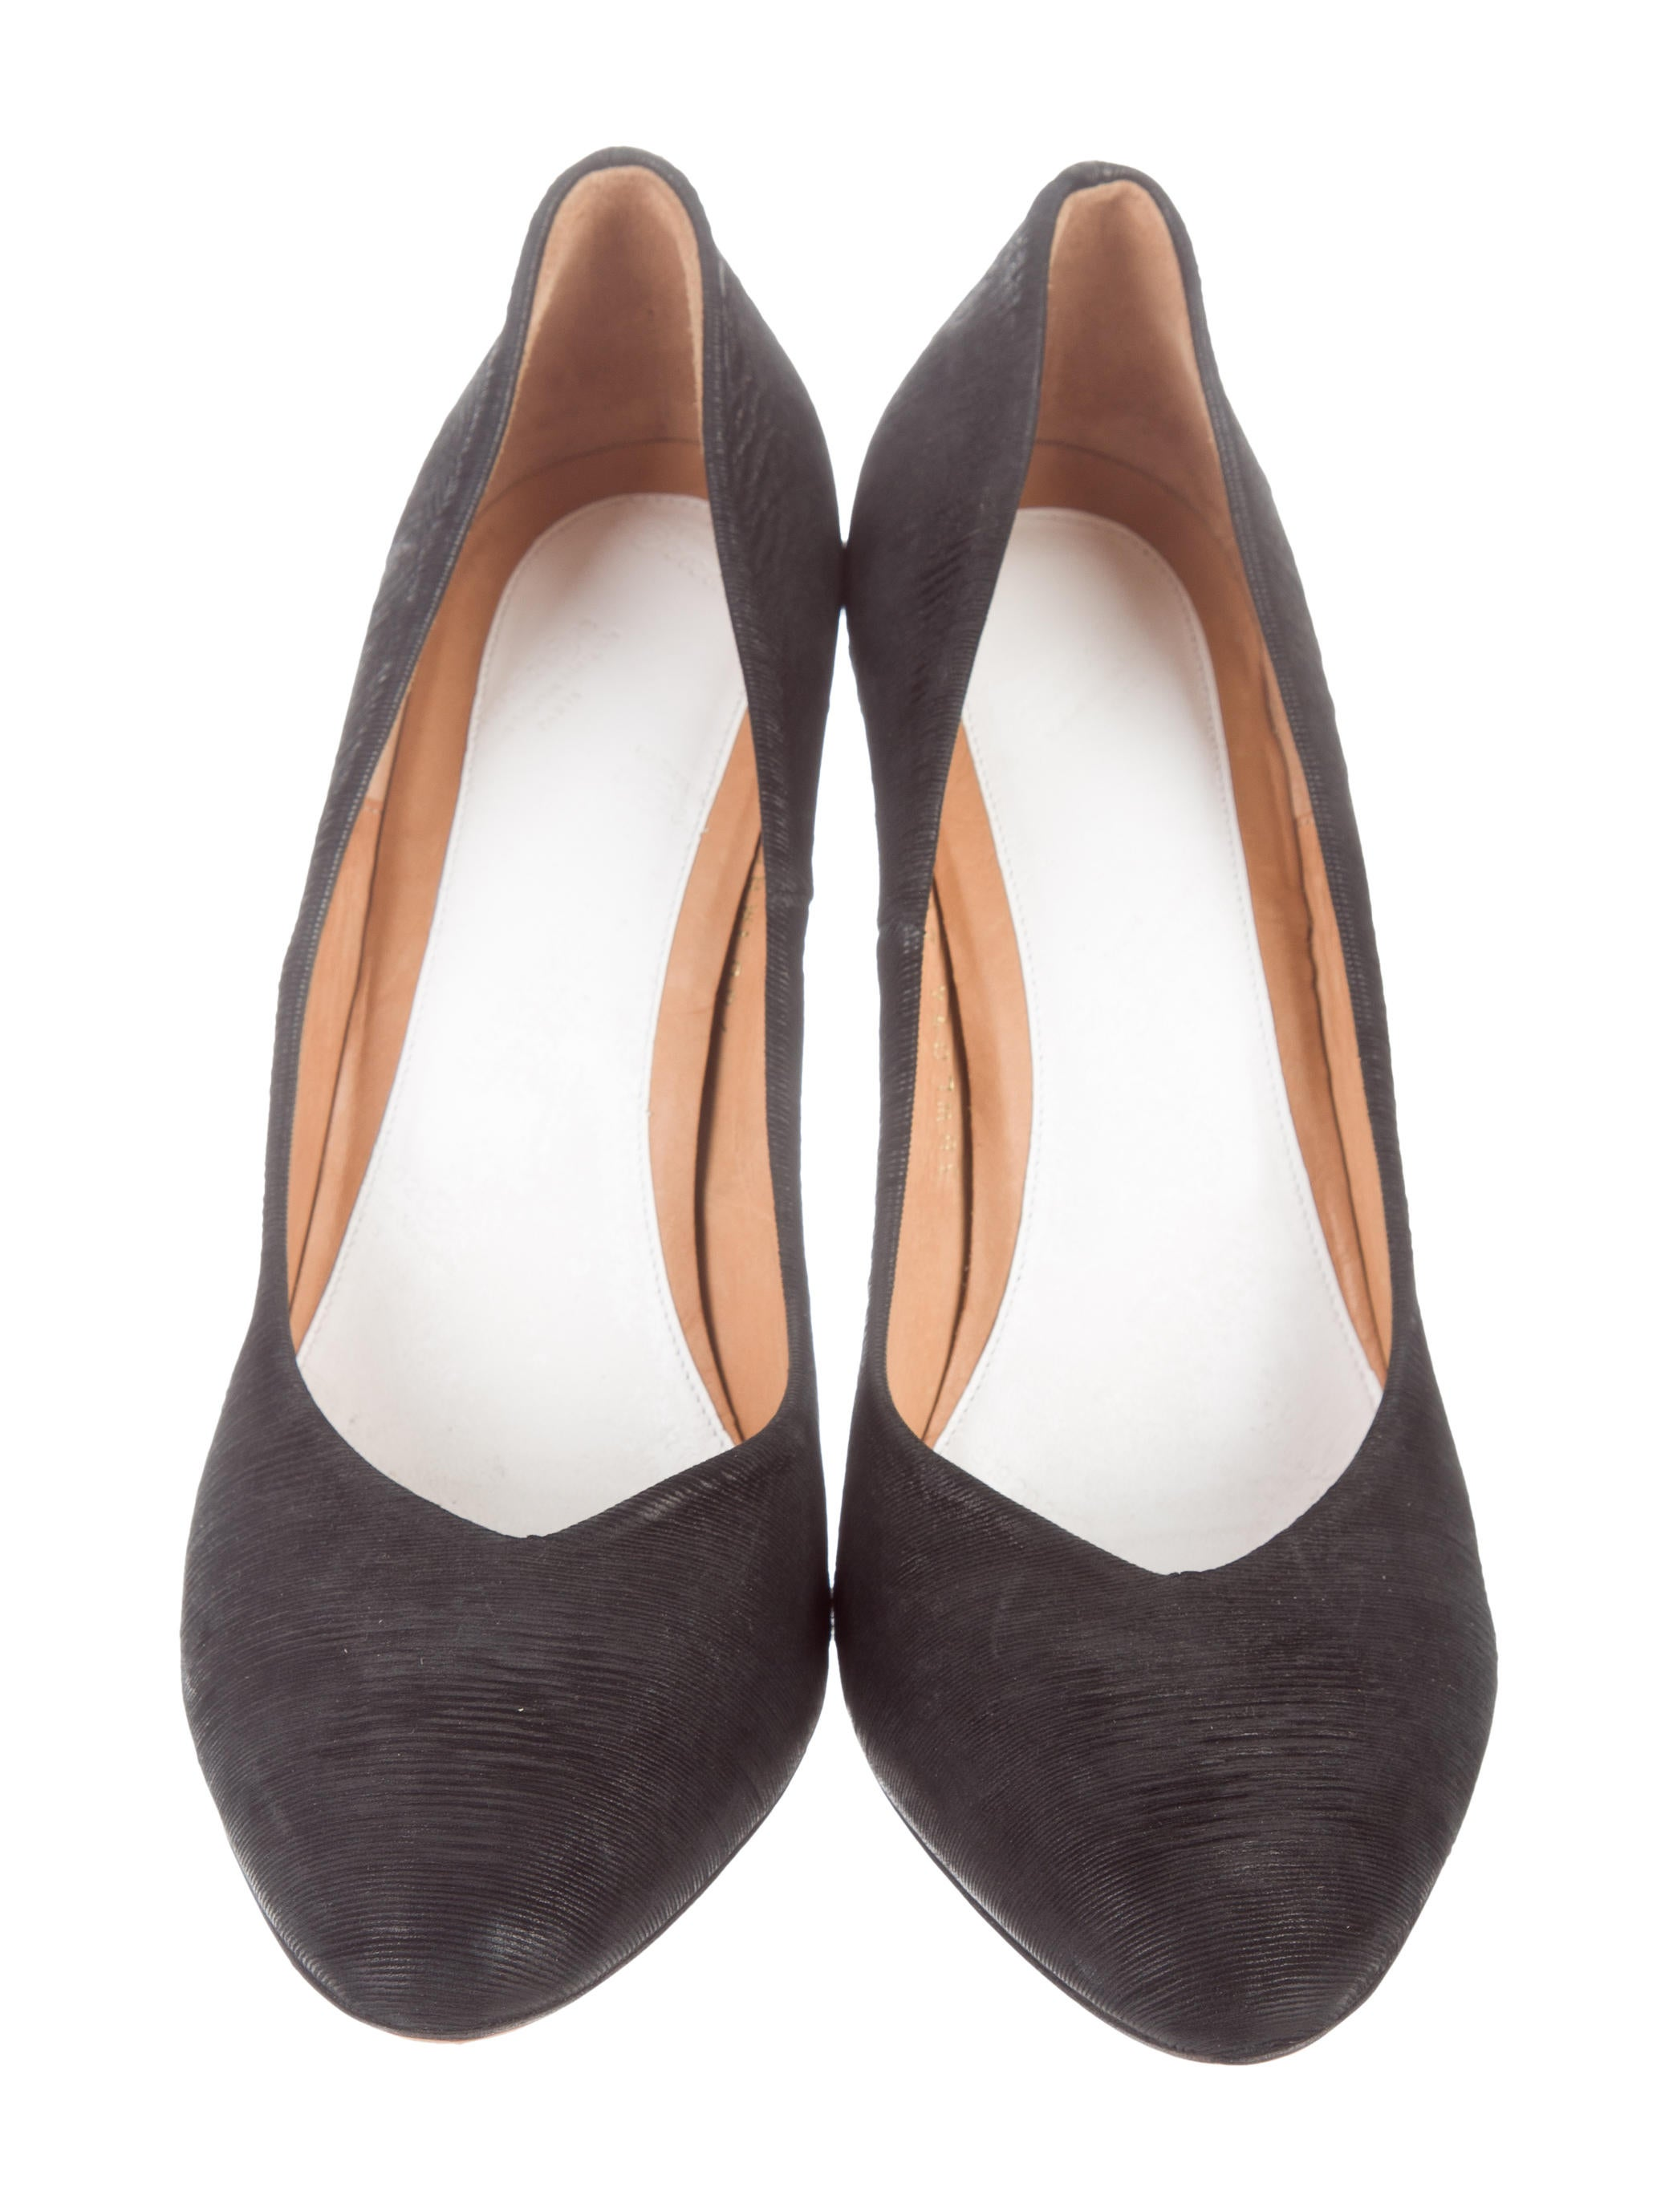 Maison Margiela Relish Pointed-Toe Pumps